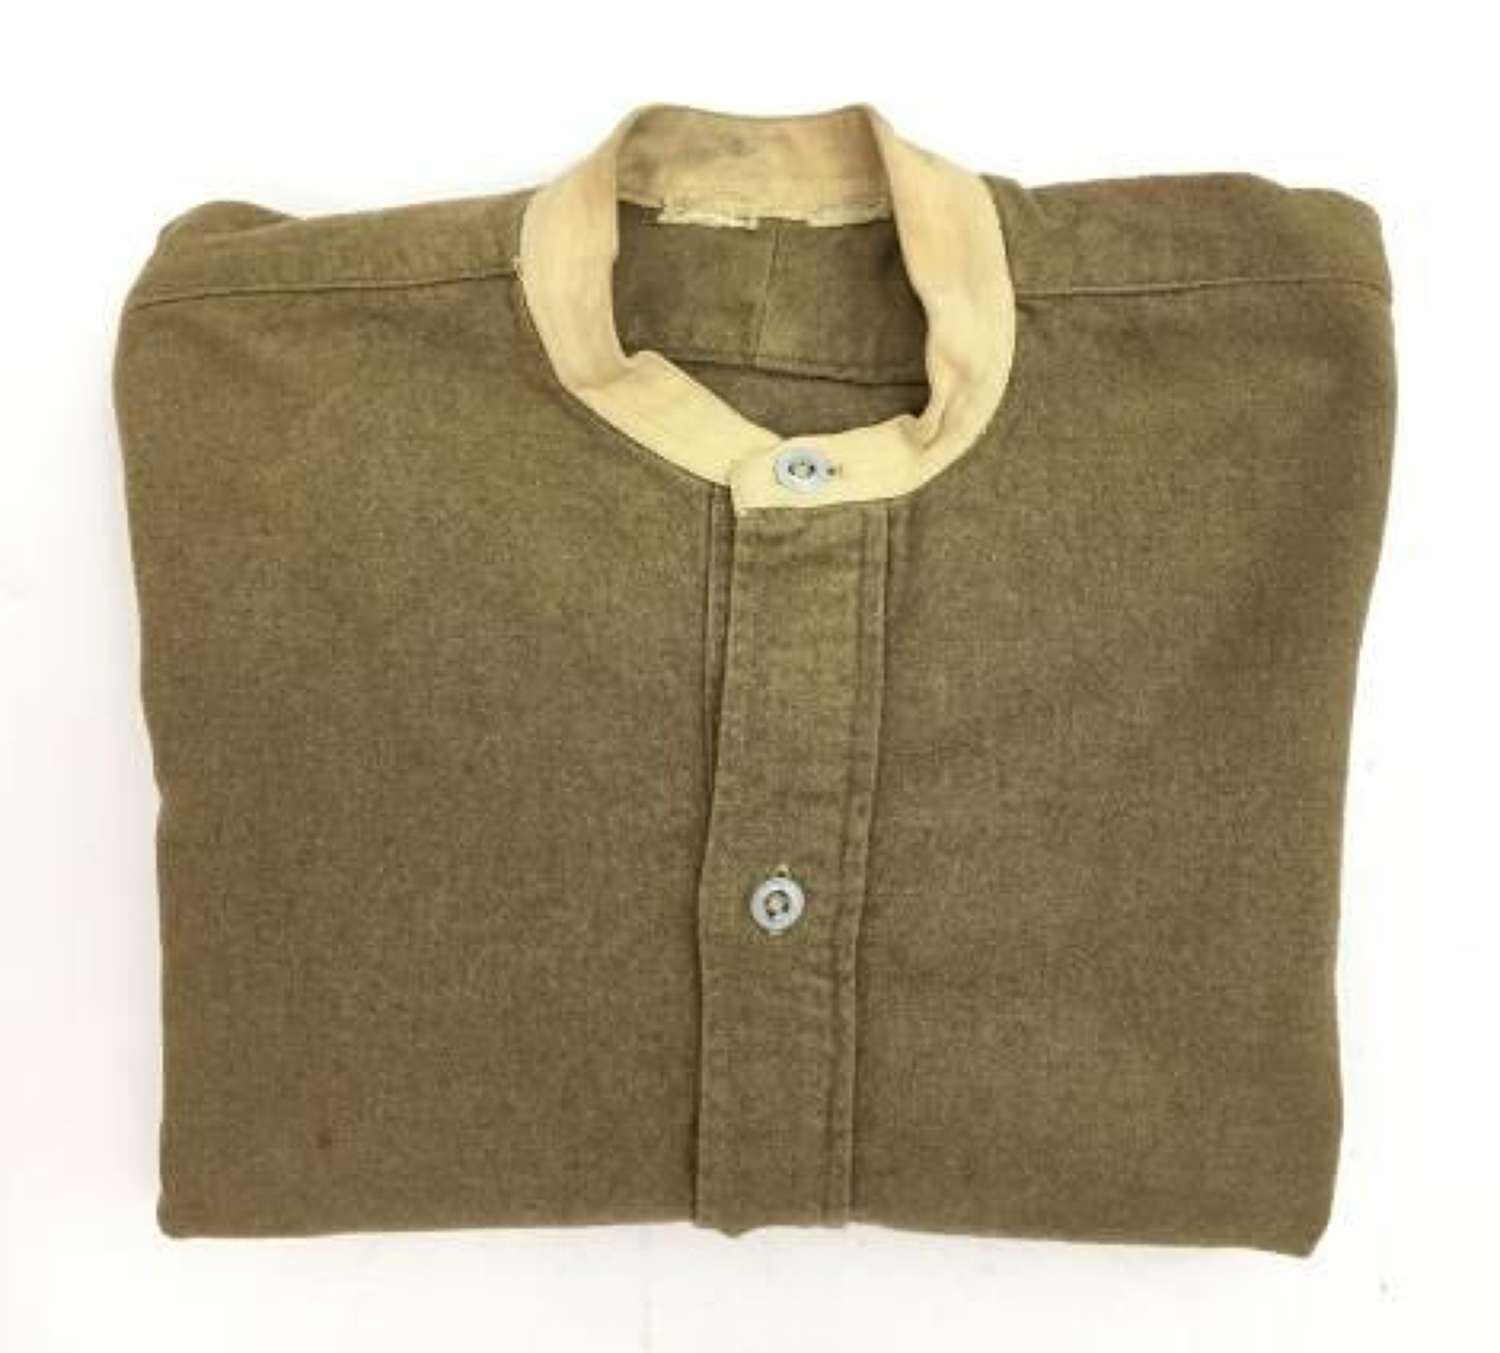 Original Early WW2 British Army Collarless Shirt by 'L. B. & S.'